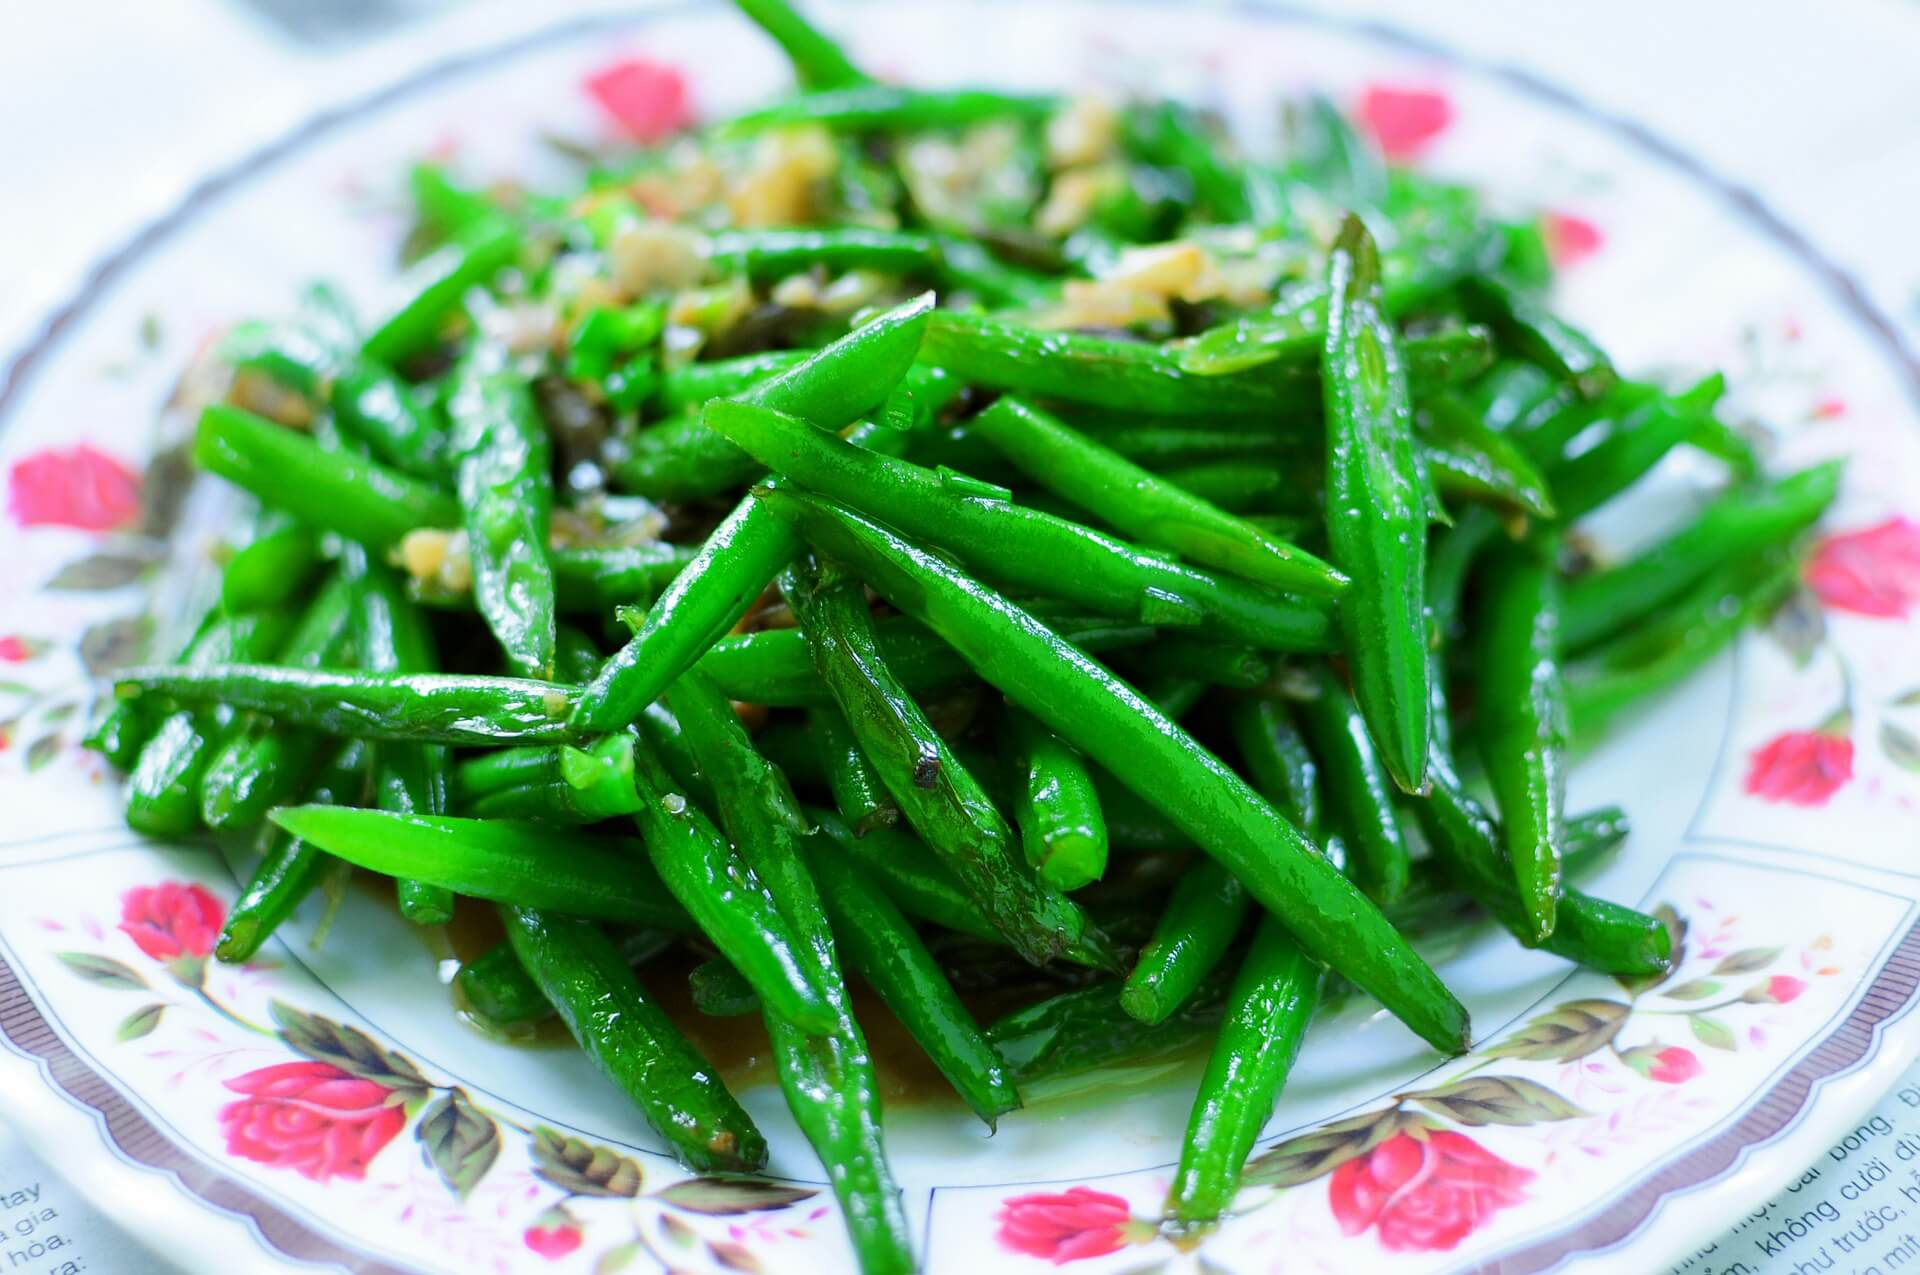 If you're being good and eating your sweet maple green beans, you may as well make a treat of them. These beans sauteed in butter and maple syrup are tender, sweet and delicious.